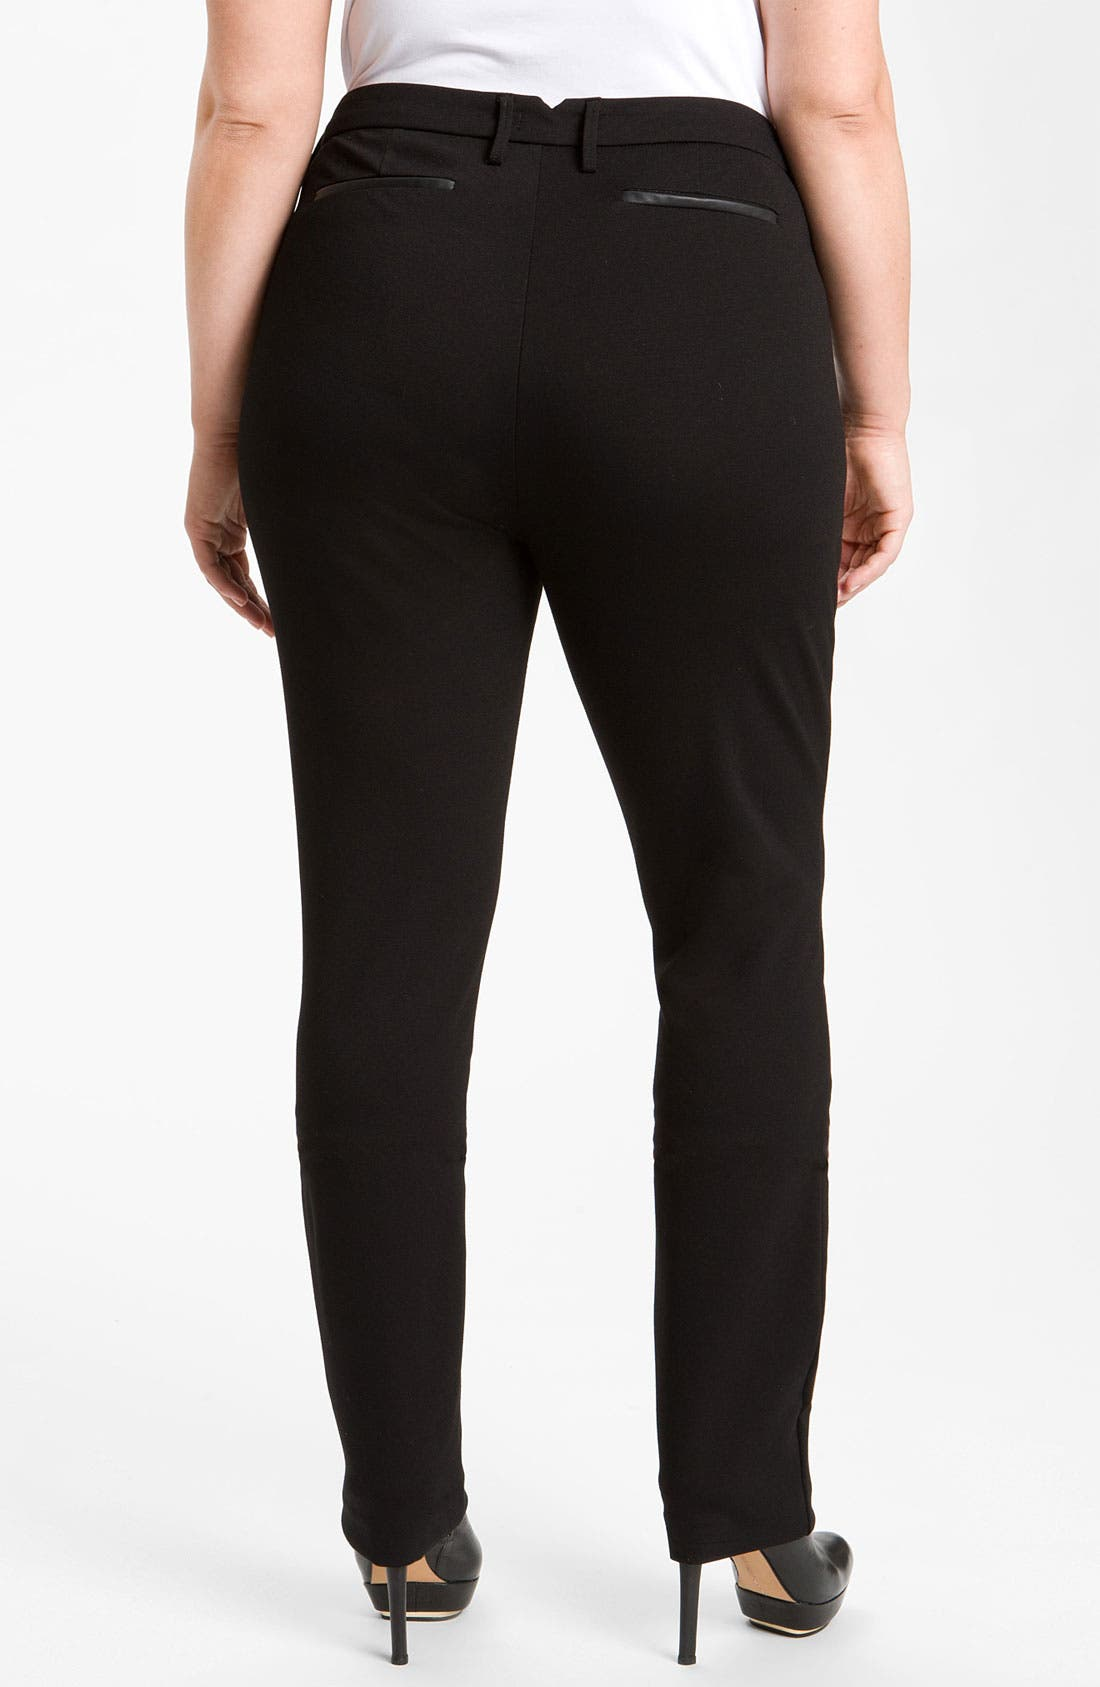 Main Image - NYDJ Stretch Ponte Knit Pants (Plus)